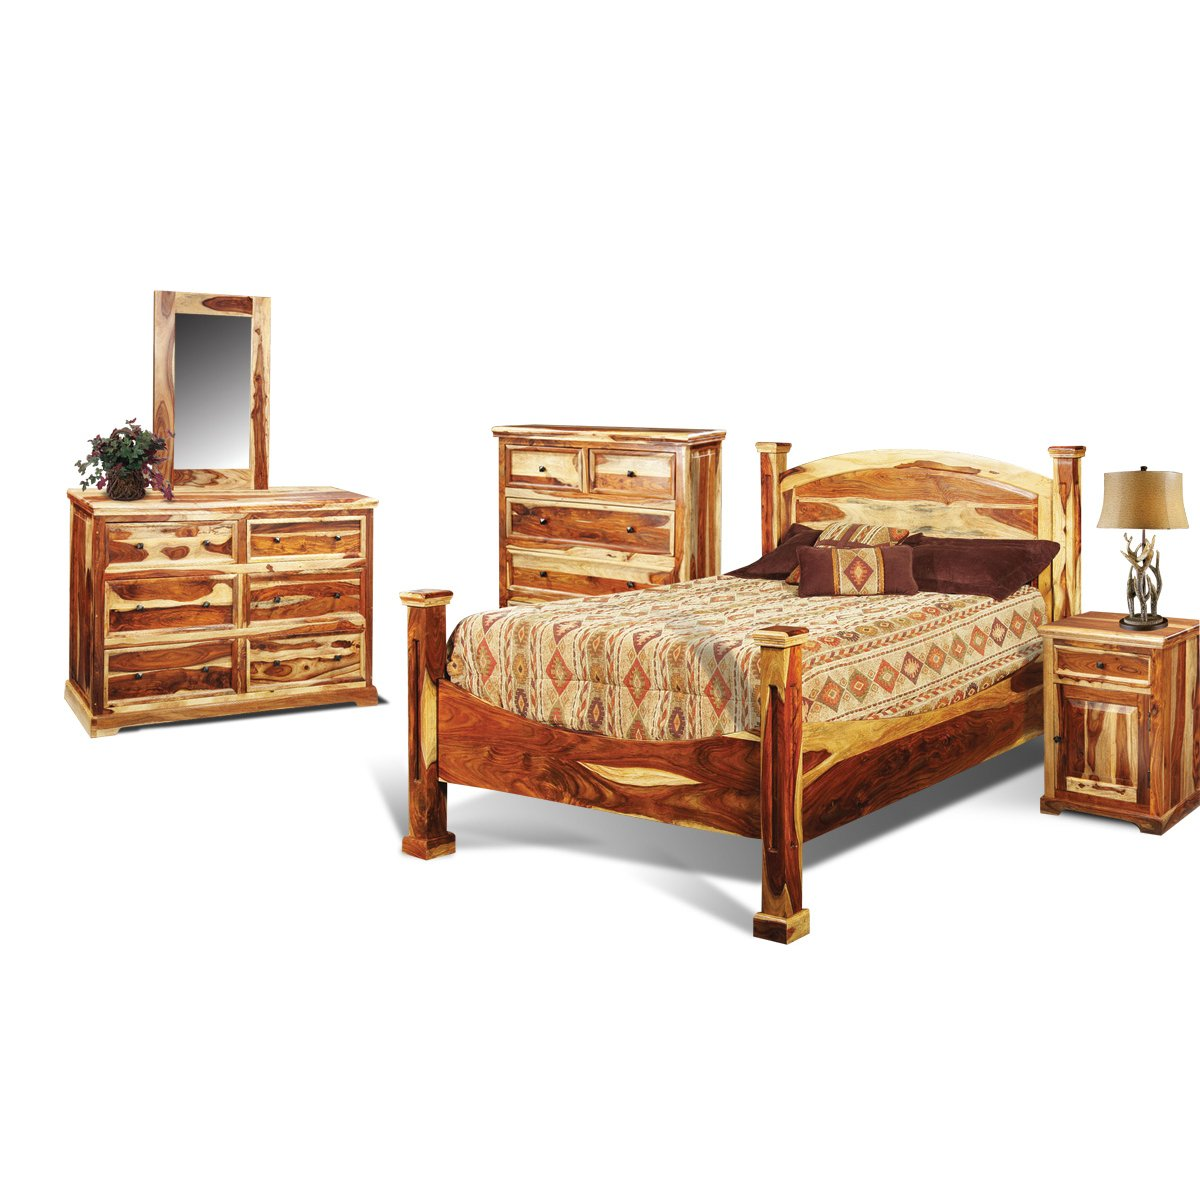 Tahoe Pine Rustic 6 Piece King Bedroom Set